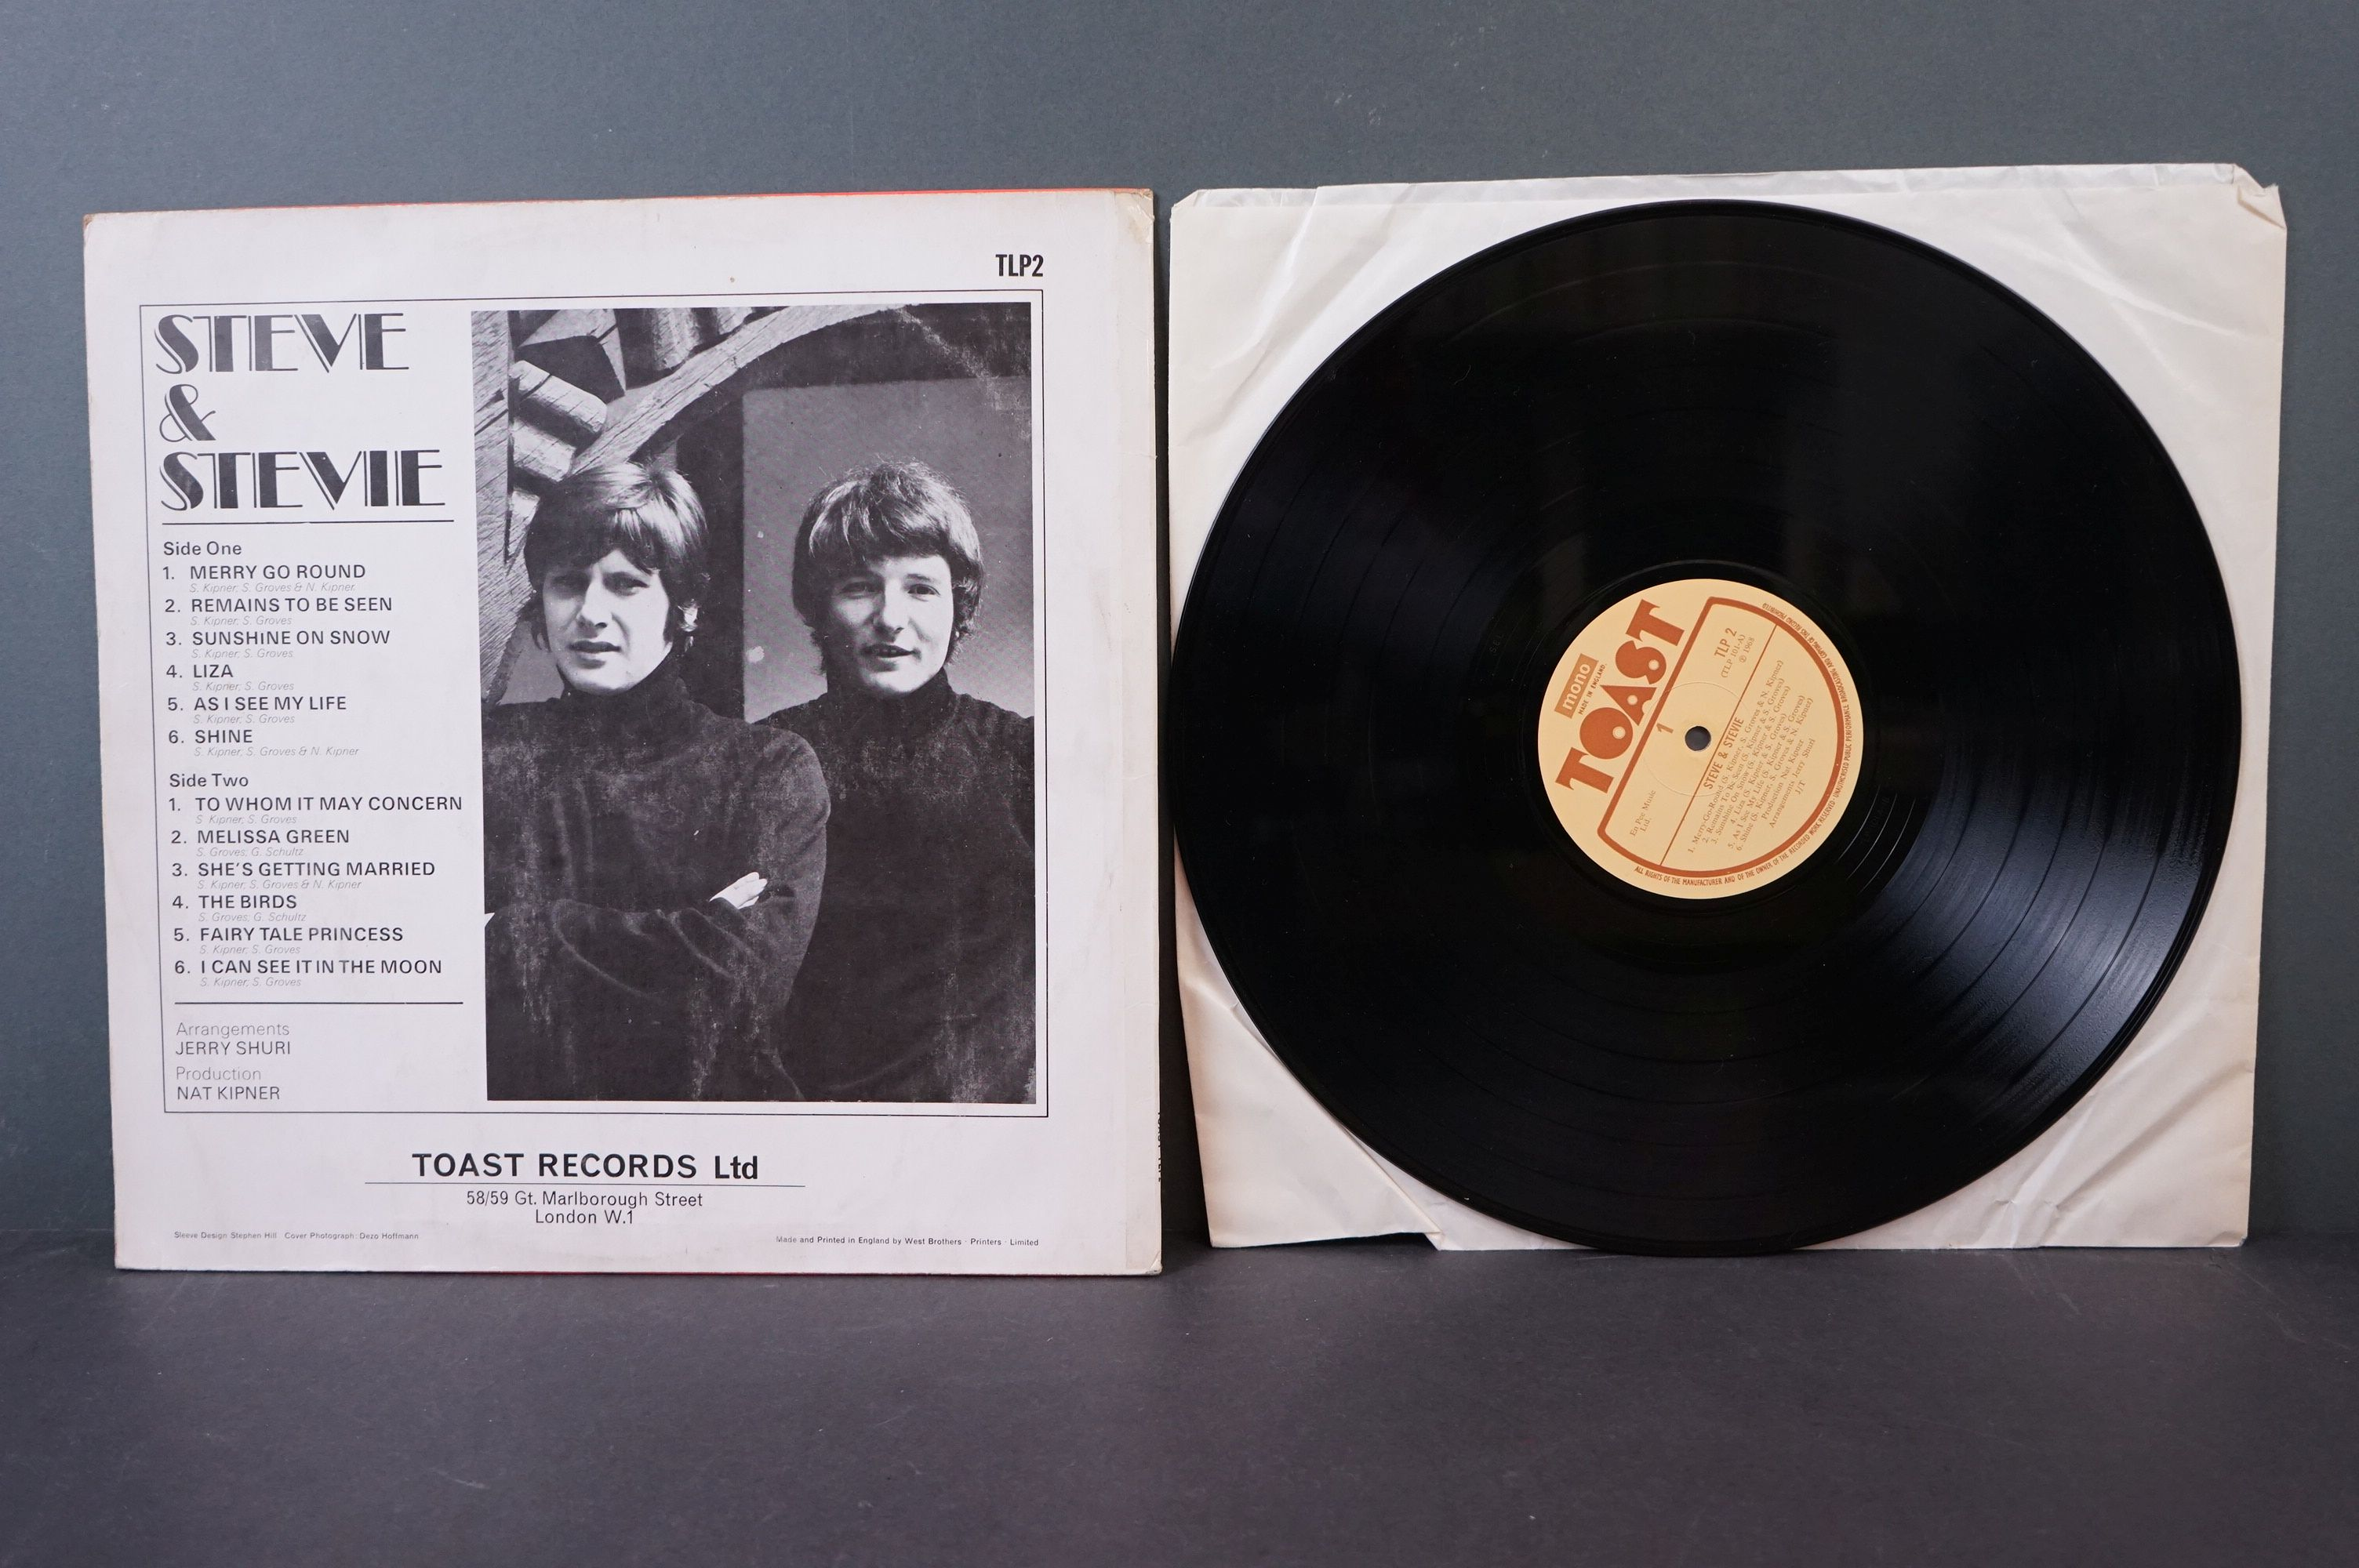 Vinyl - Psych - Two scarce original UK pressing Psych albums to include Steve & Stevie - Steve & - Image 3 of 5